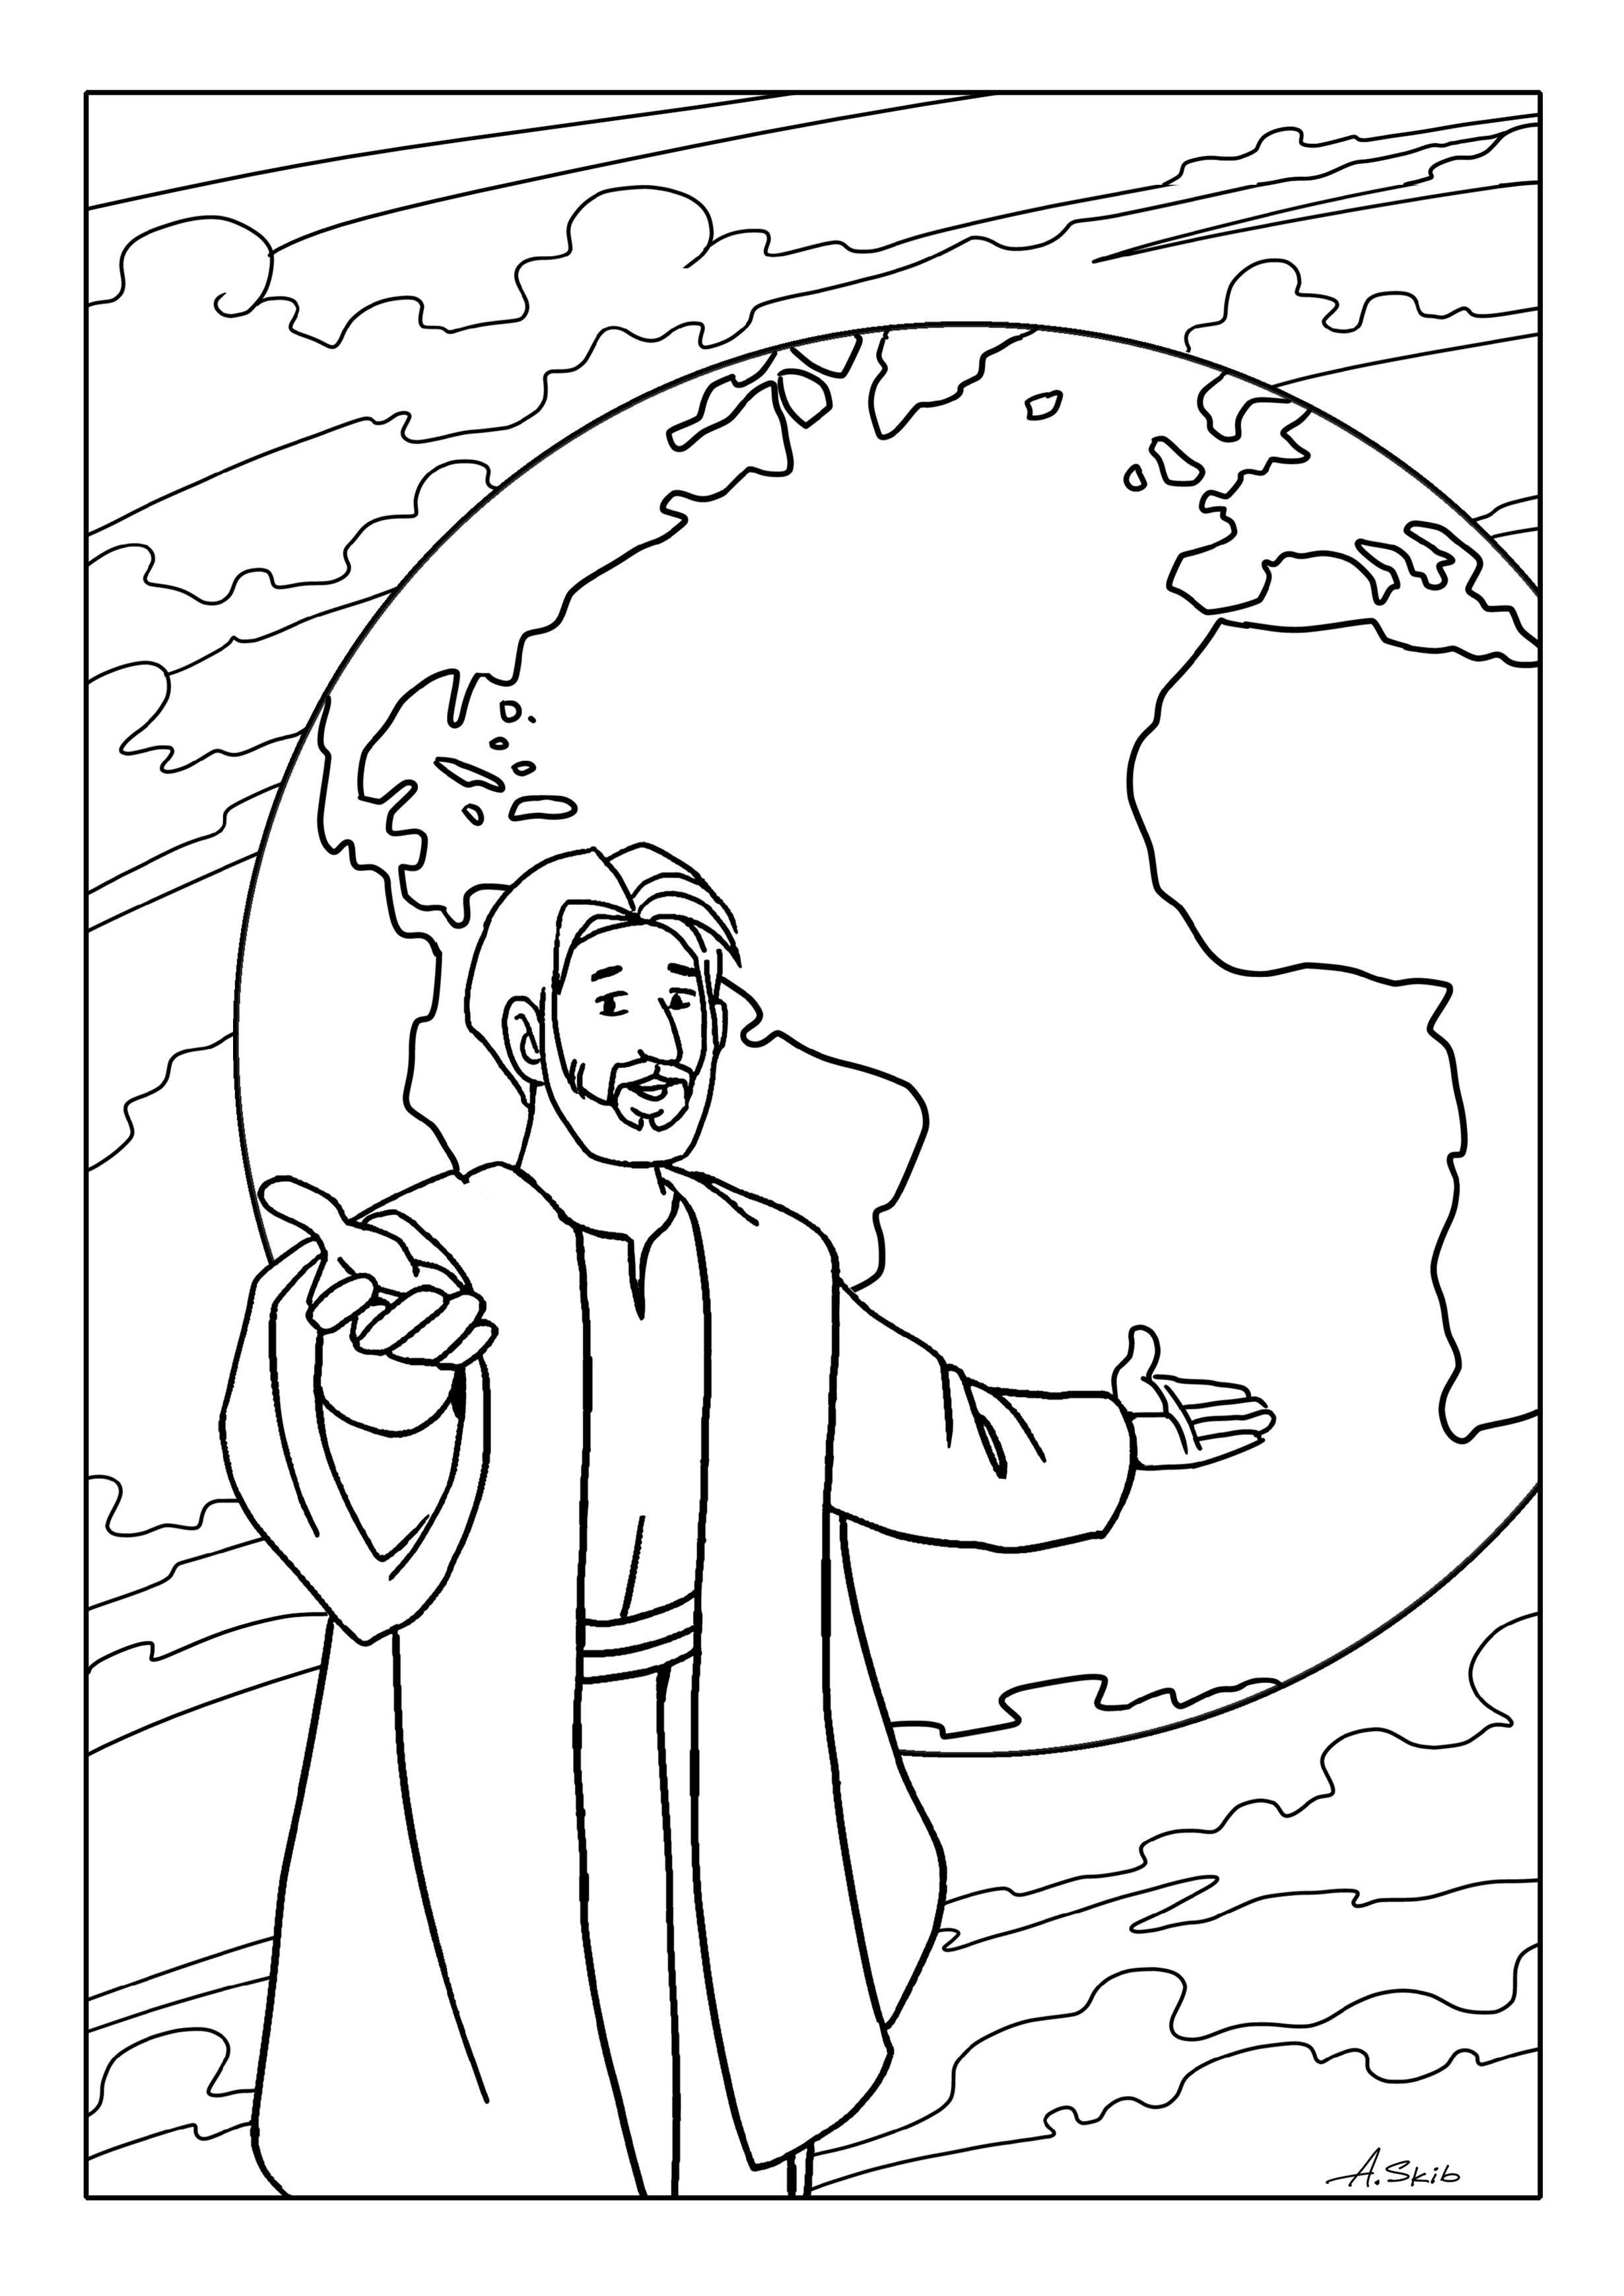 Free Coloring Pages The Great Commission | Bible Coloring